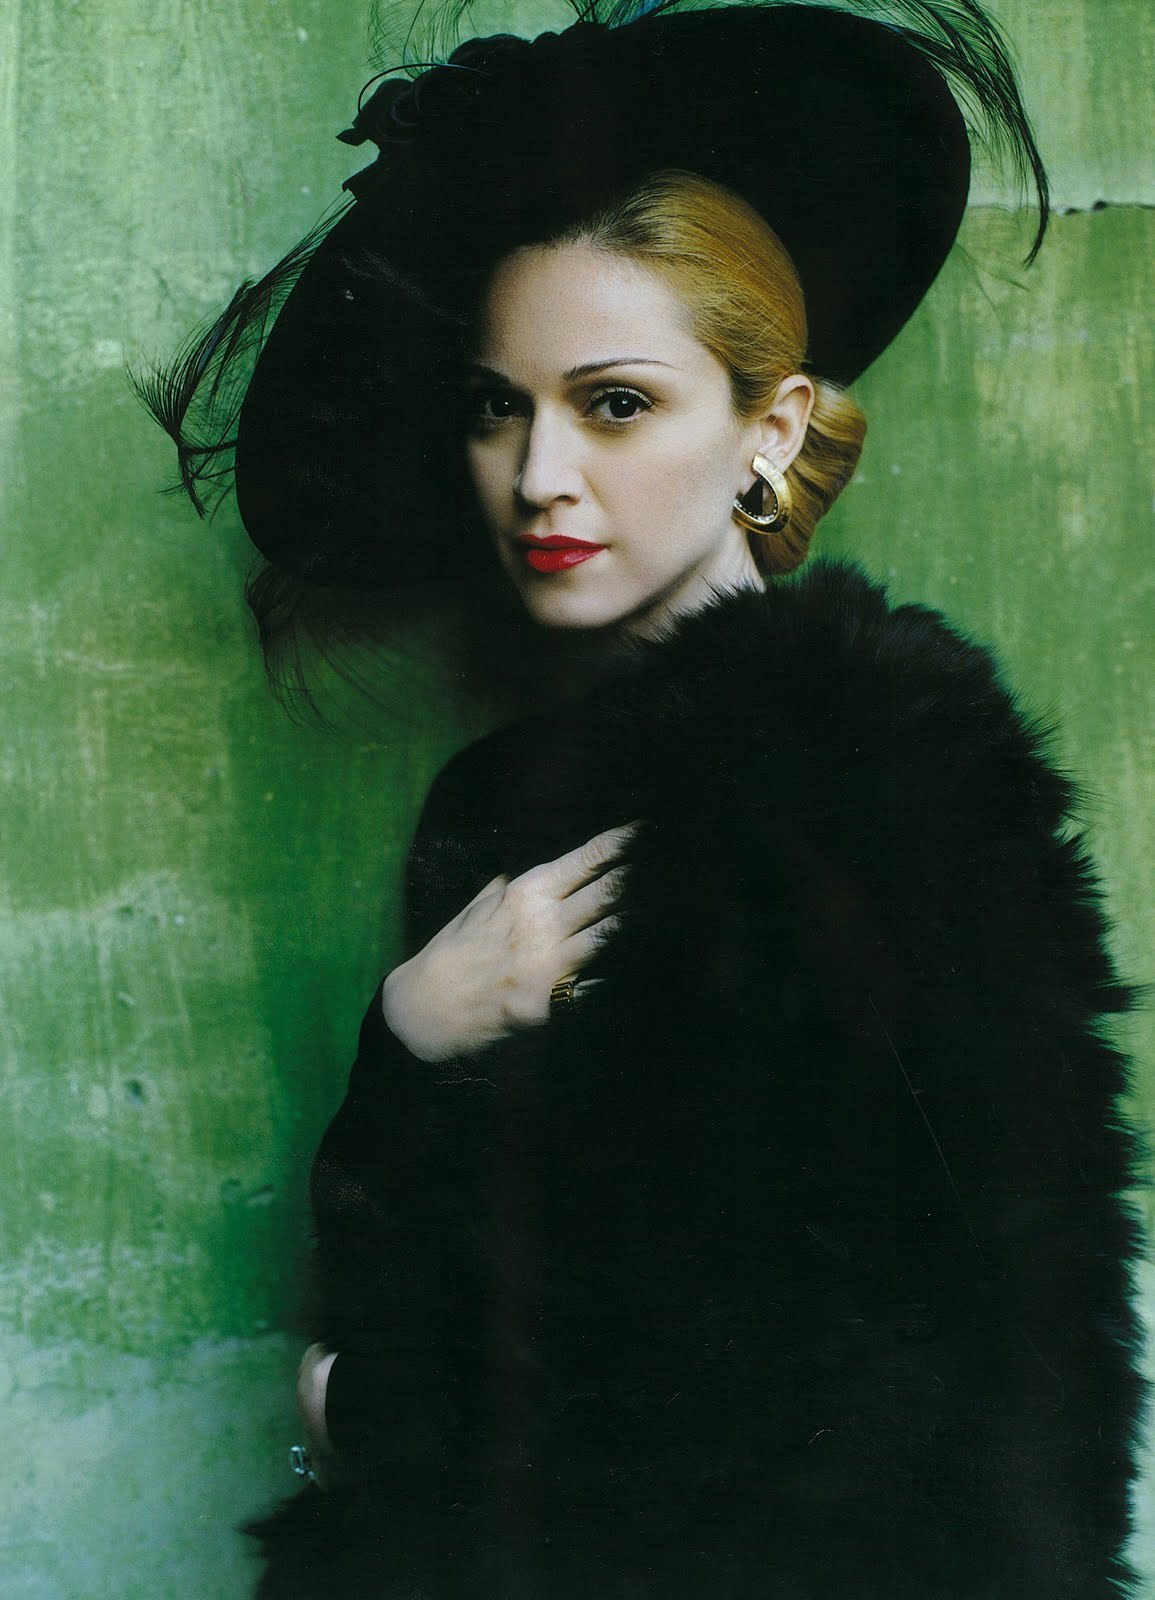 gentlysleeping:  Madonna photographed by Mario Testino for Vanity Fair - November 1996  MADONNA AS EVITA! <3